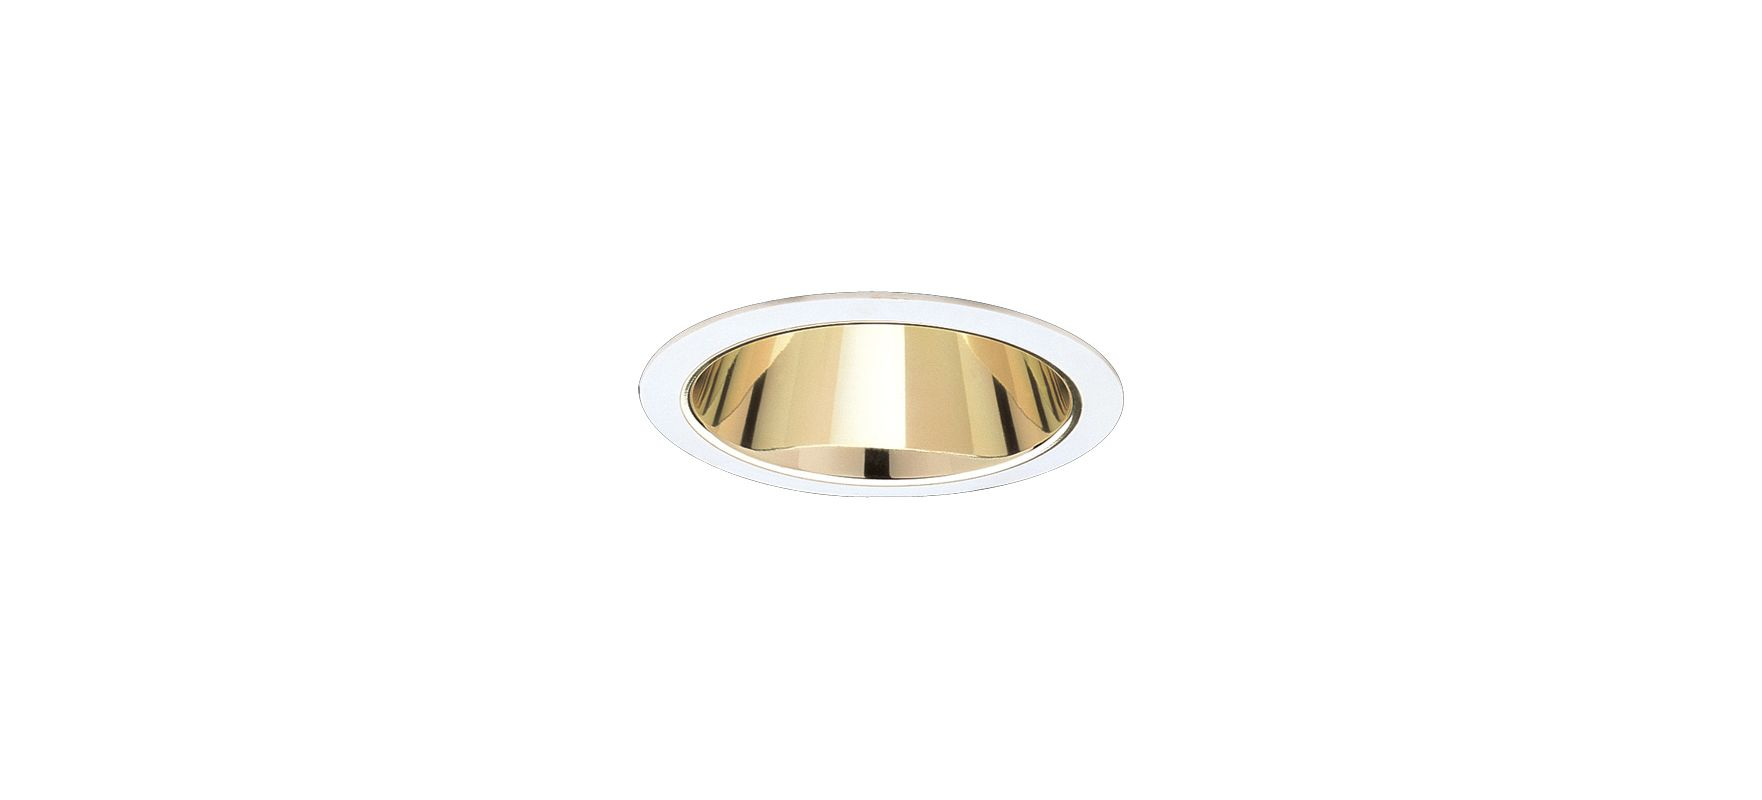 "Elco EL841 8"" CFL Reflector Gold / White Recessed Lights Reflector"